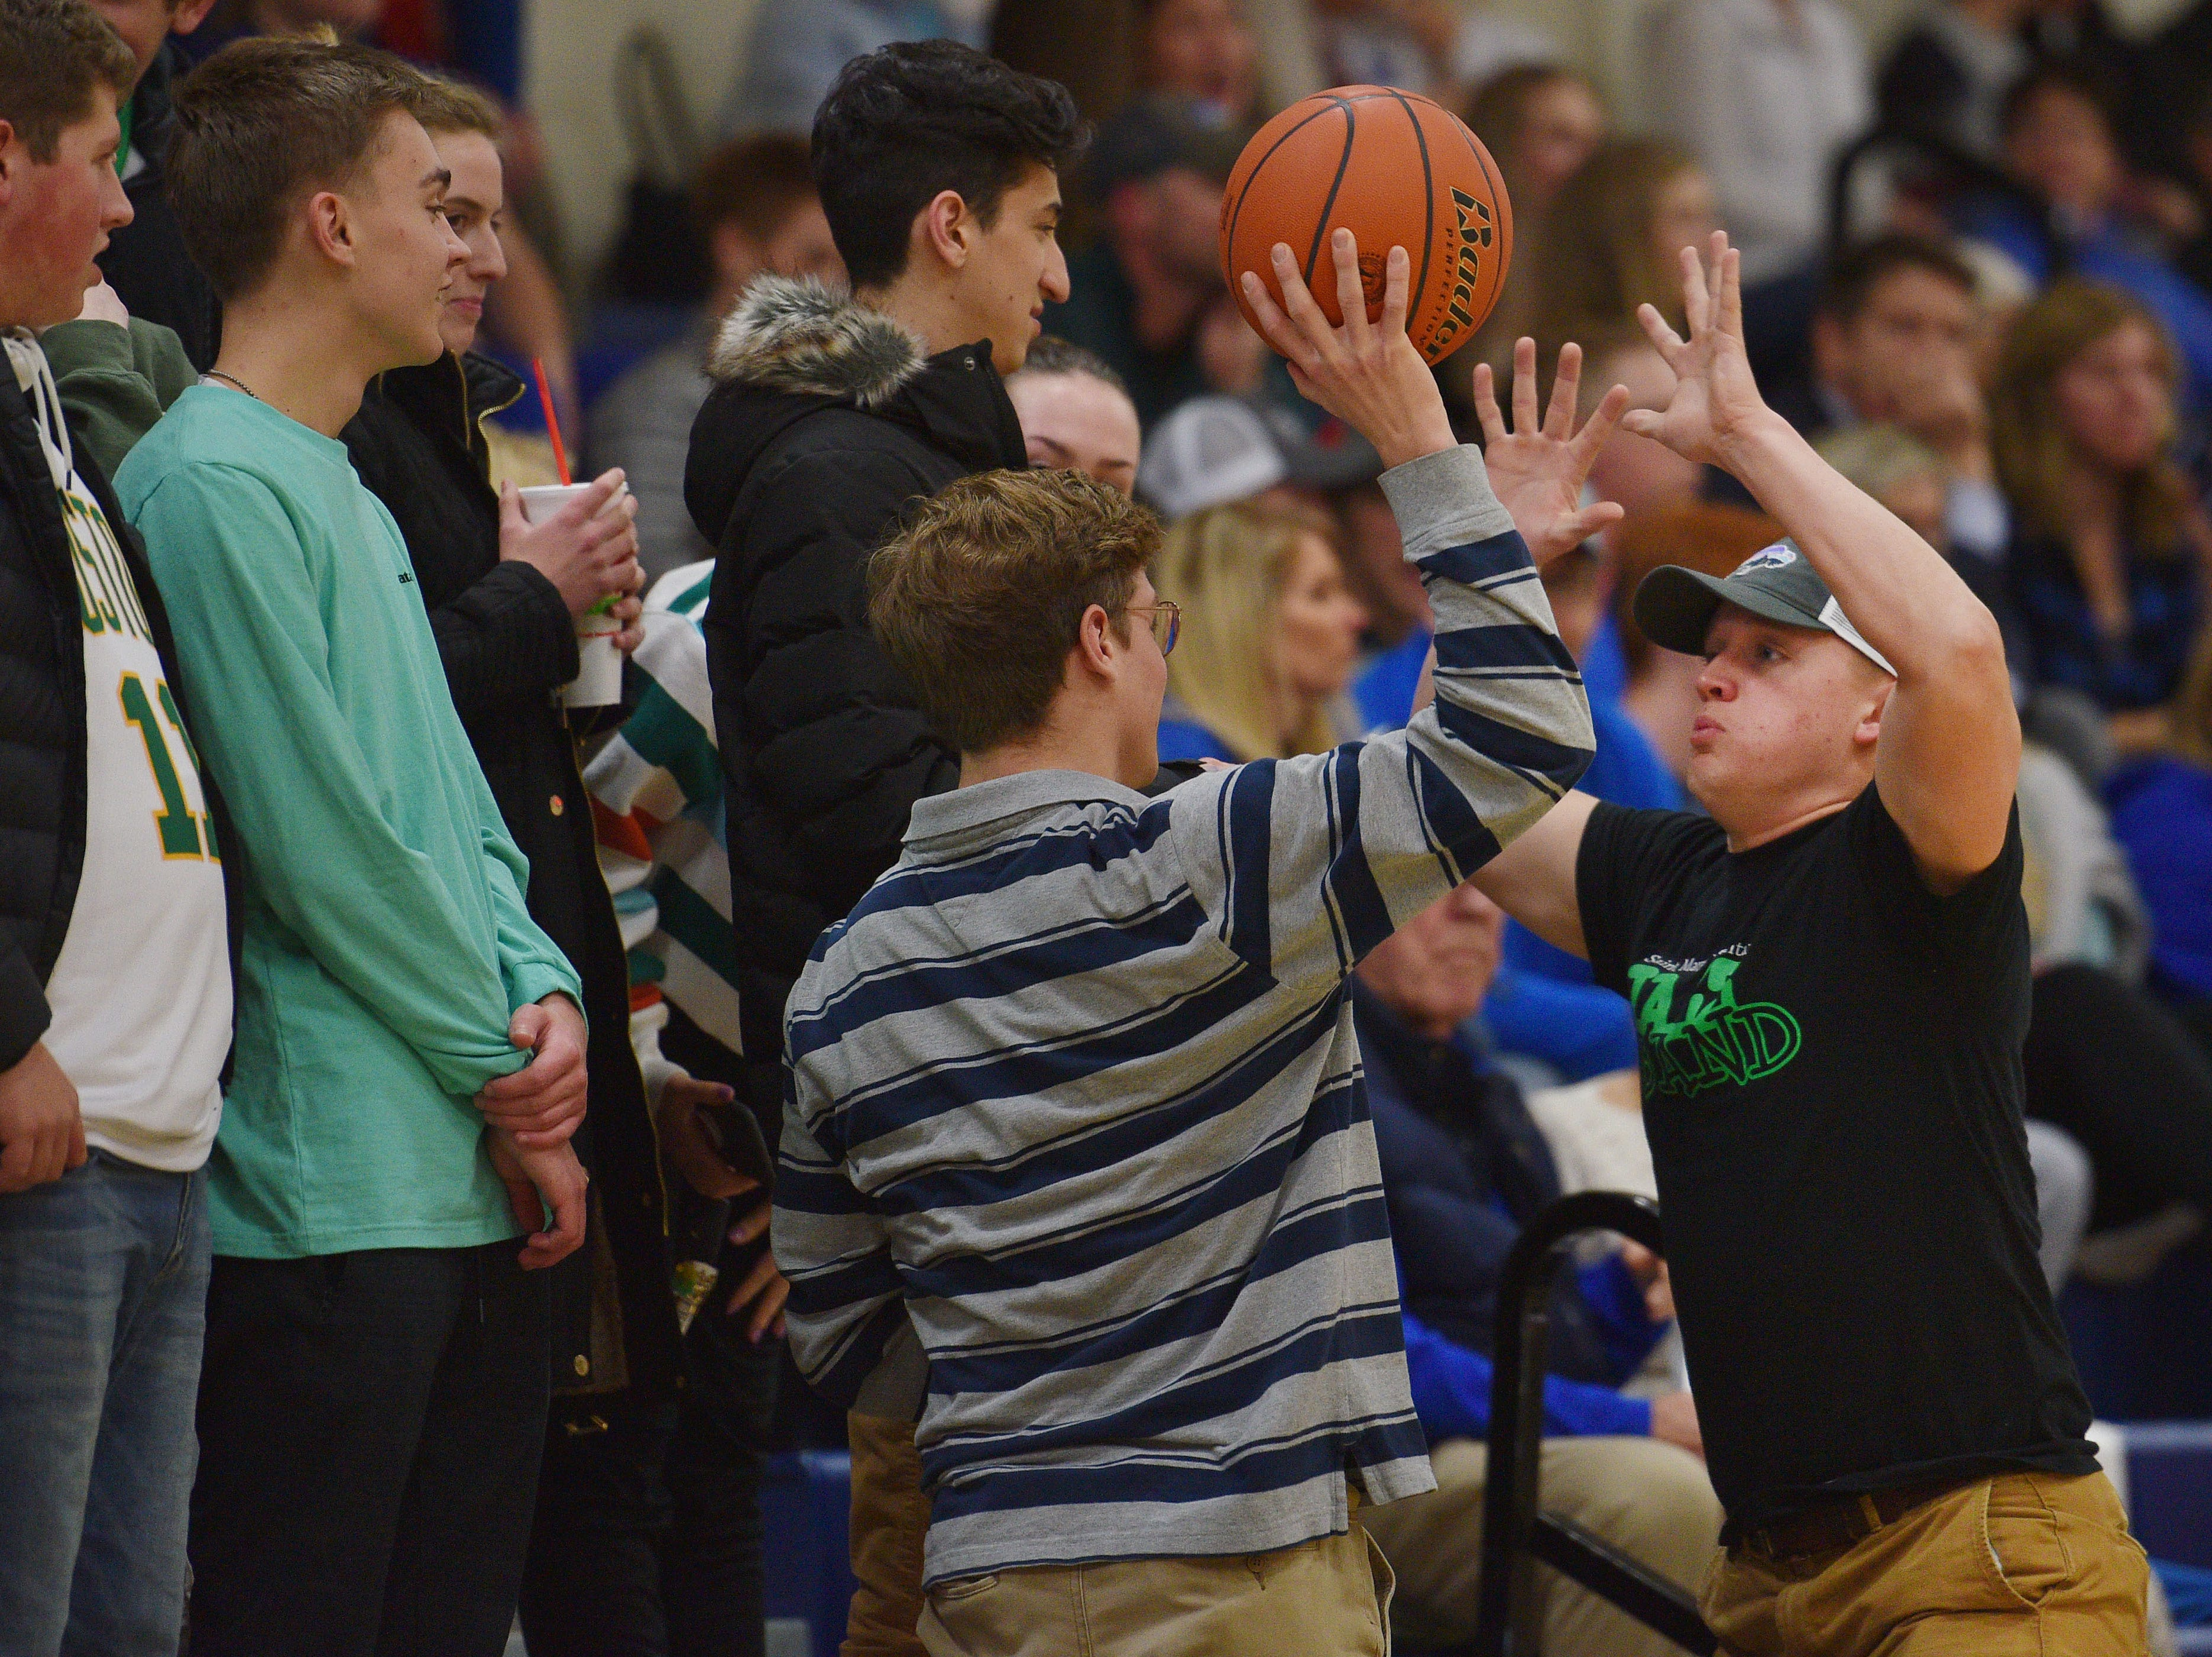 O'Gorman's student section plays with the ball once it goes out of bounds during the game against Washington Thursday, Jan. 10, at O'Gorman in Sioux Falls.